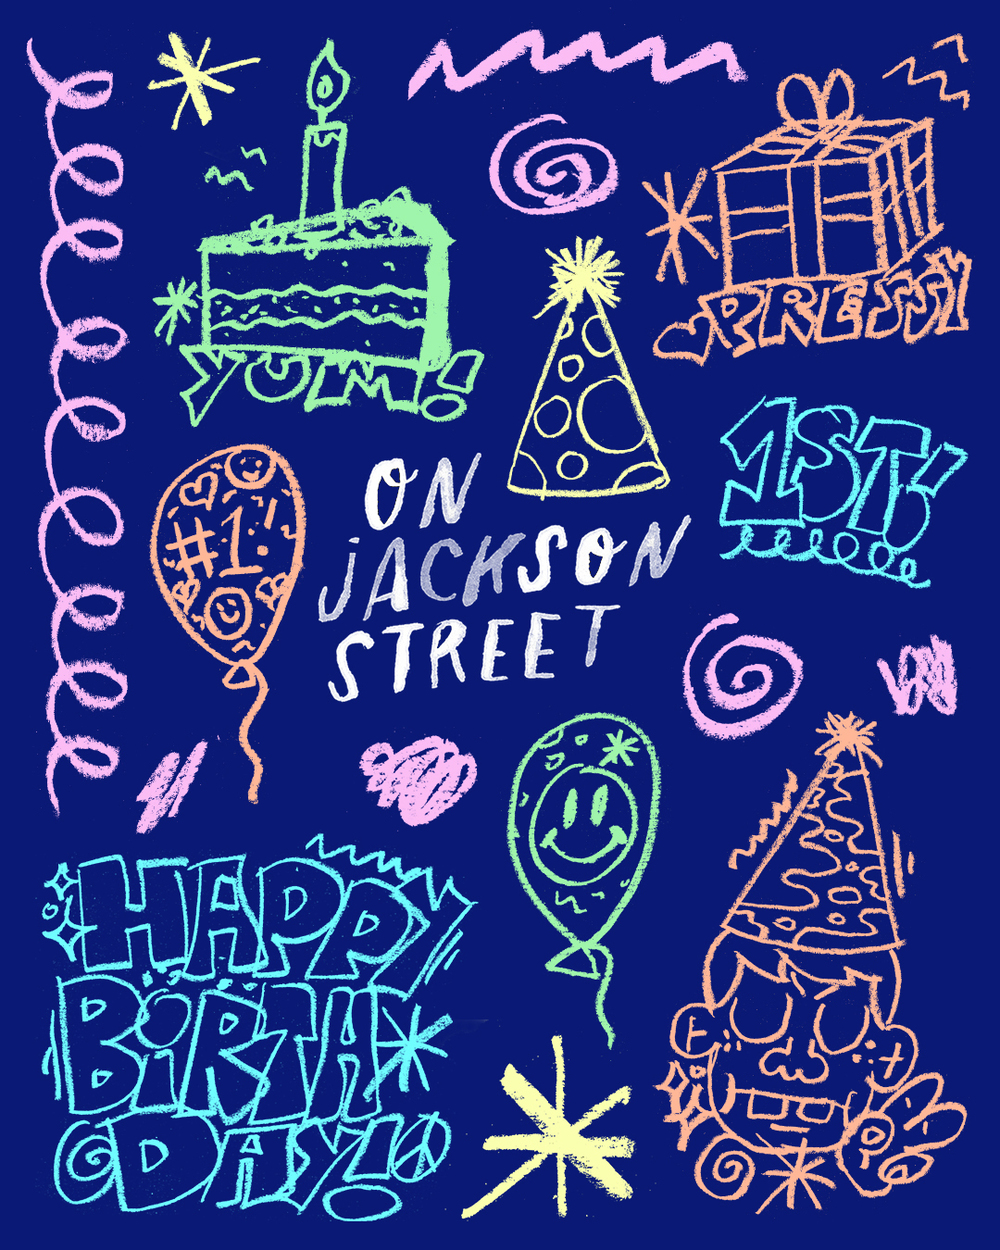 1st birthday illustrations for On Jackson Street, created lovingly by my partner, Oliver.